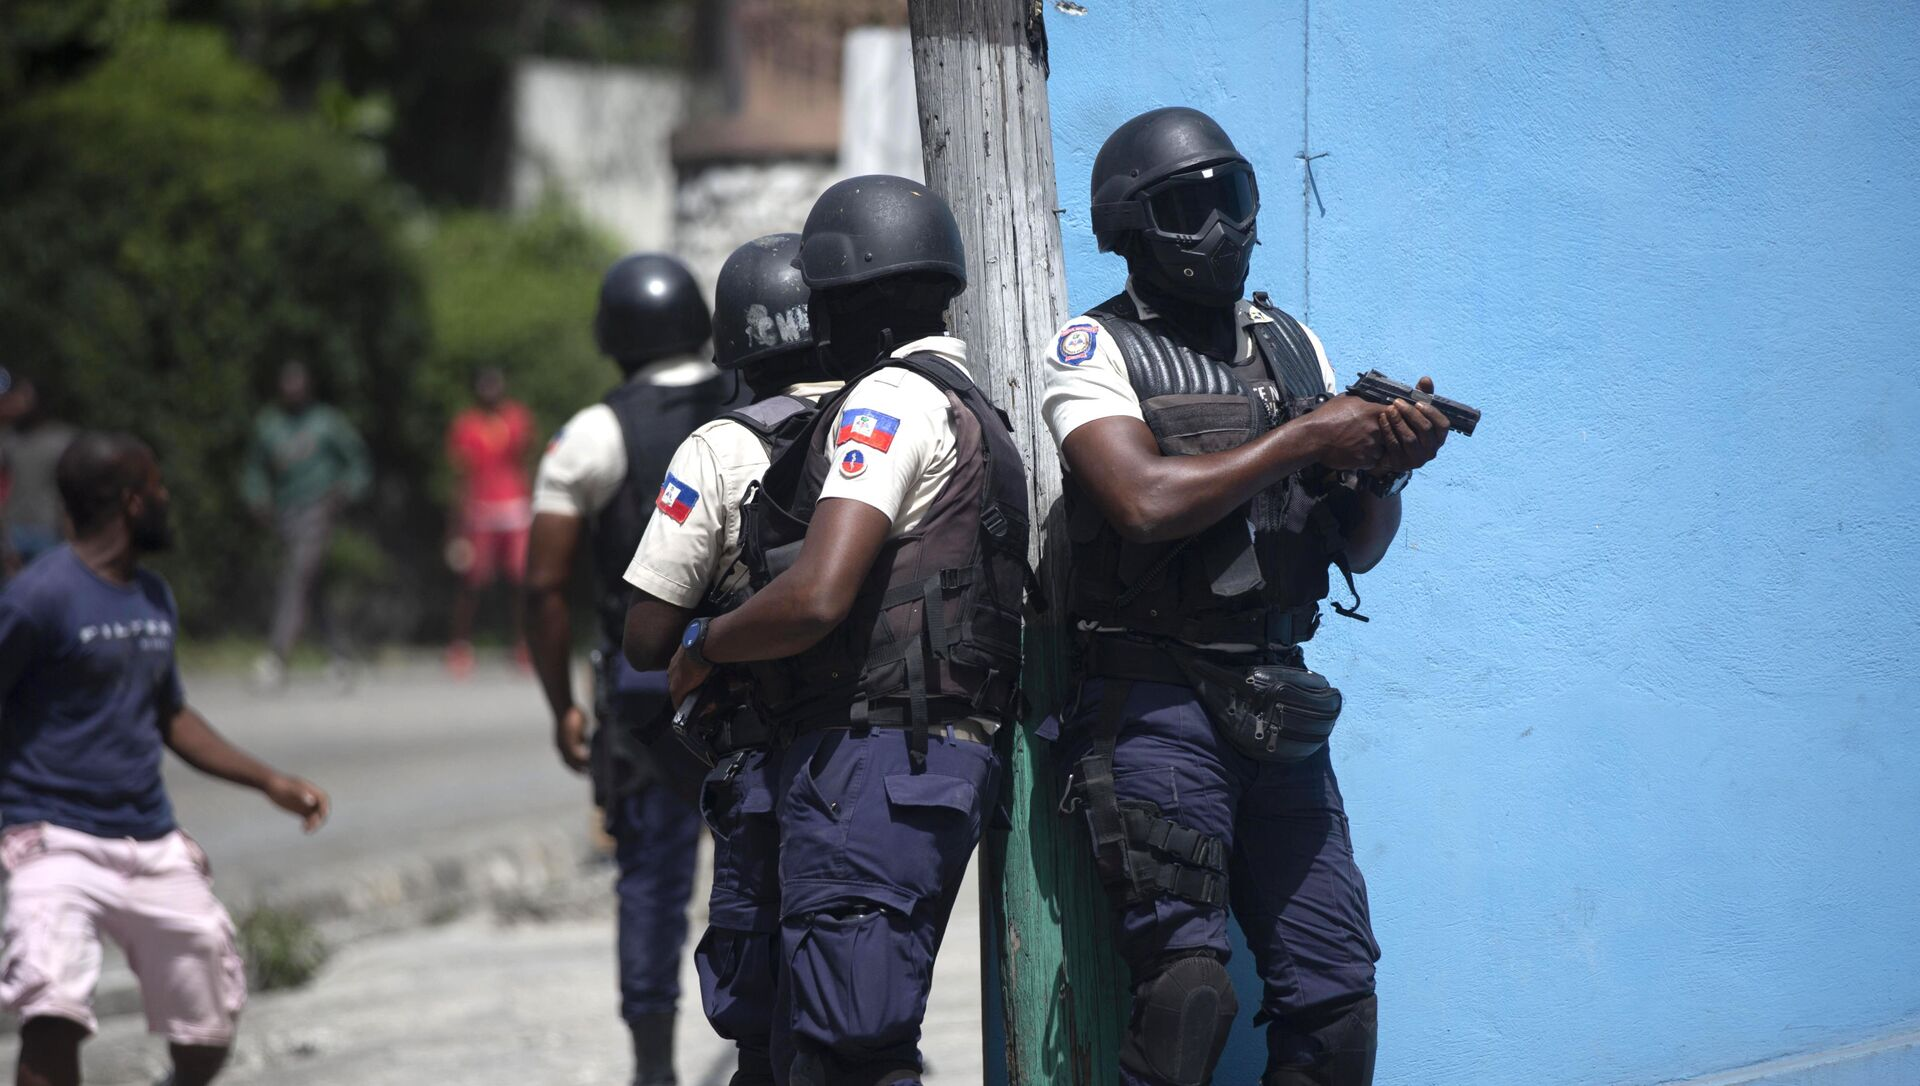 Police officers patrol in search for suspects in the murder Haiti's President Jovenel Moise, in Port-au-Prince, Haiti, Thursday, July 8, 2021. Moise was assassinated in an attack on his private residence early Wednesday. - Sputnik International, 1920, 24.07.2021